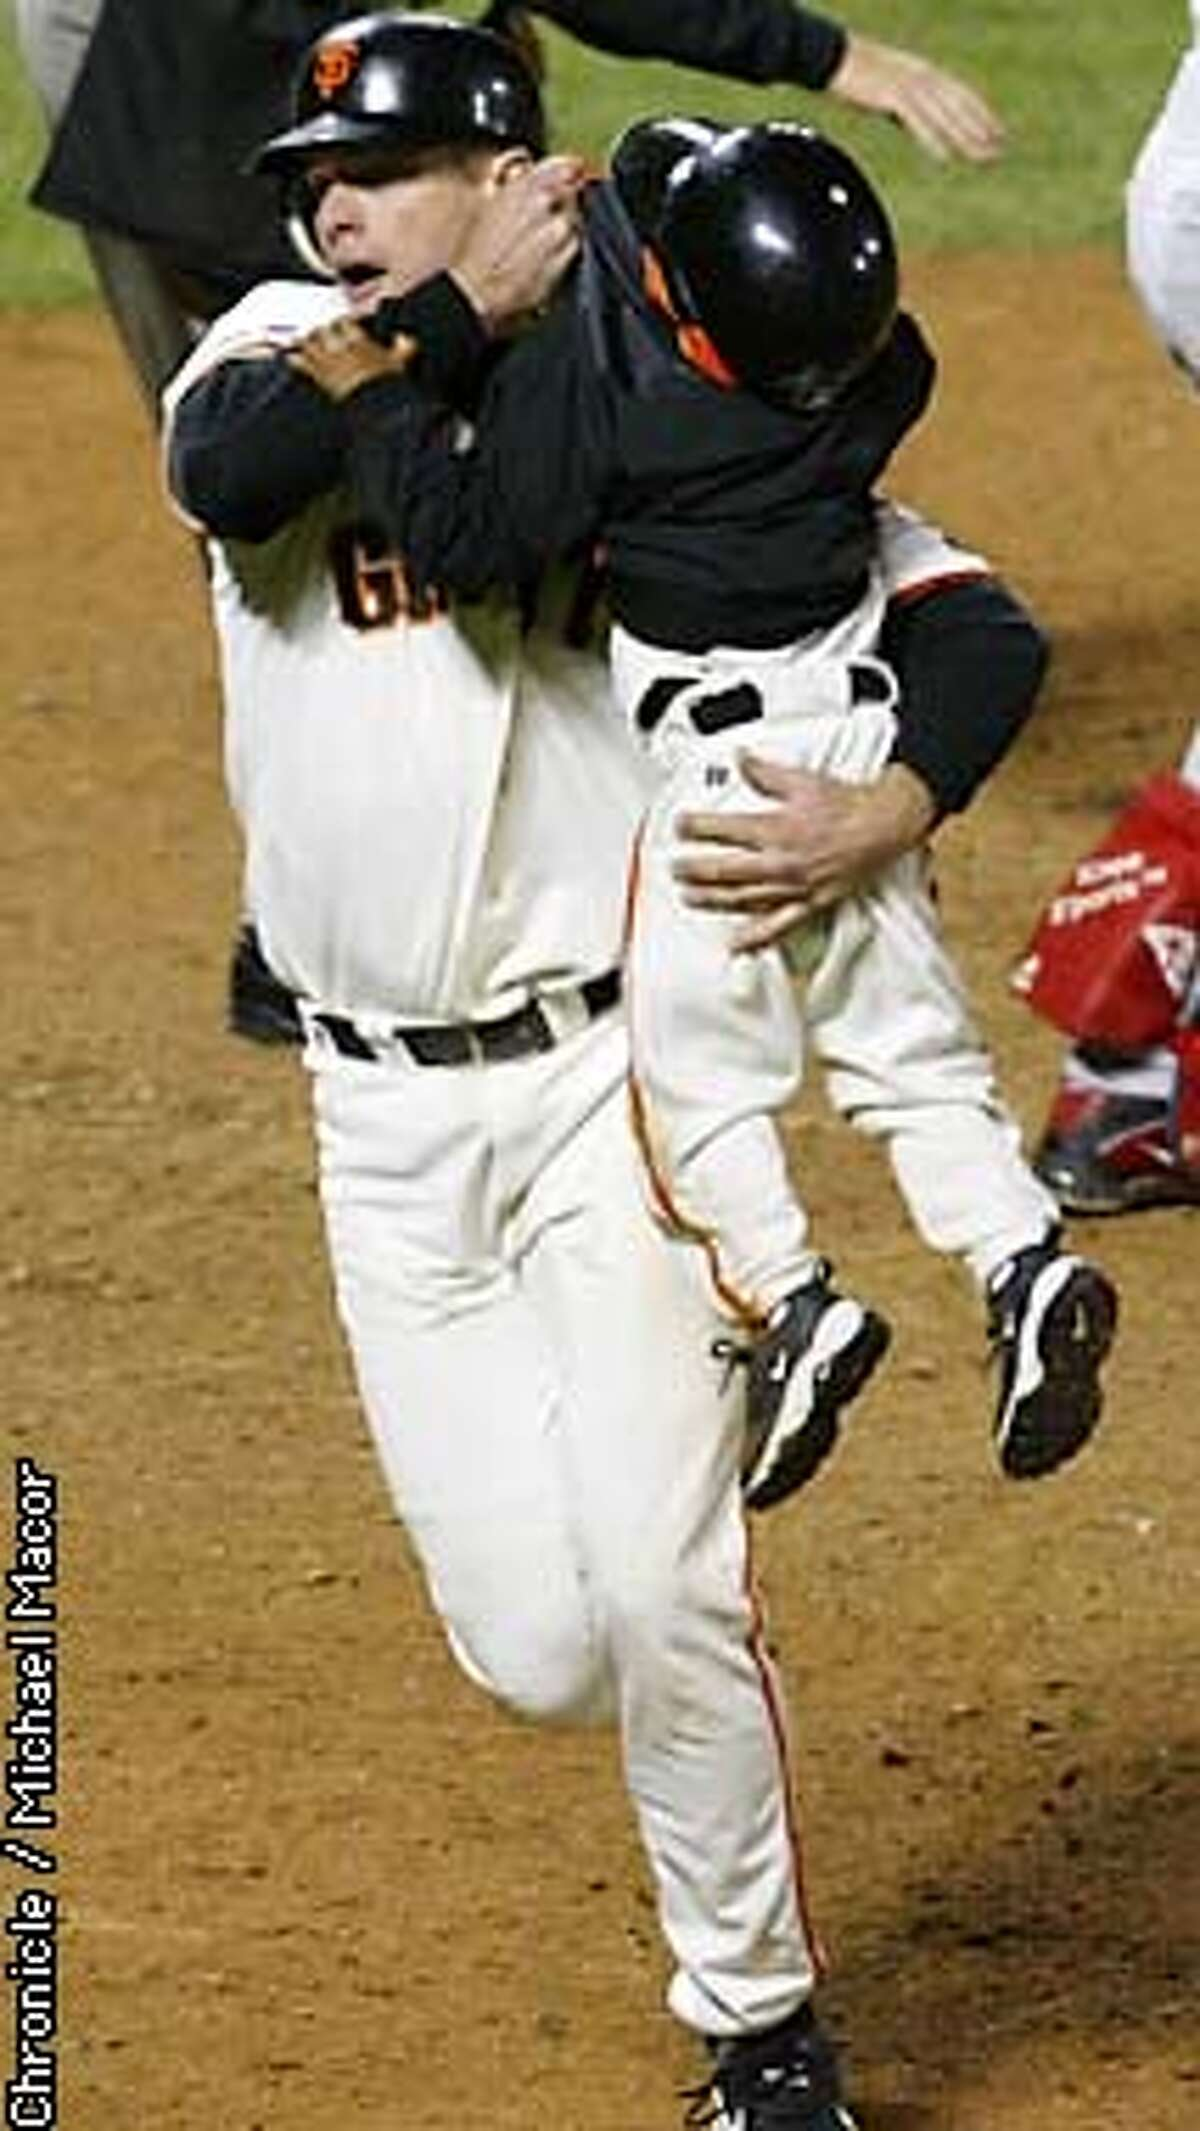 GIANTS67-C-24OCT02-SP-MAC --- J.T. Snow grabs a hold of Dusty Baker's 3-year old son Darren, as he came dangerously close to home plate as David Bell was about to cross the plate after Snow. The San Francisco Giants play the Anaheim Angels in Games 5 of the World Series at Pac Bell Park in San Francisco, Ca. October 24, 2002. Michael Macor/San Francisco Chronicle